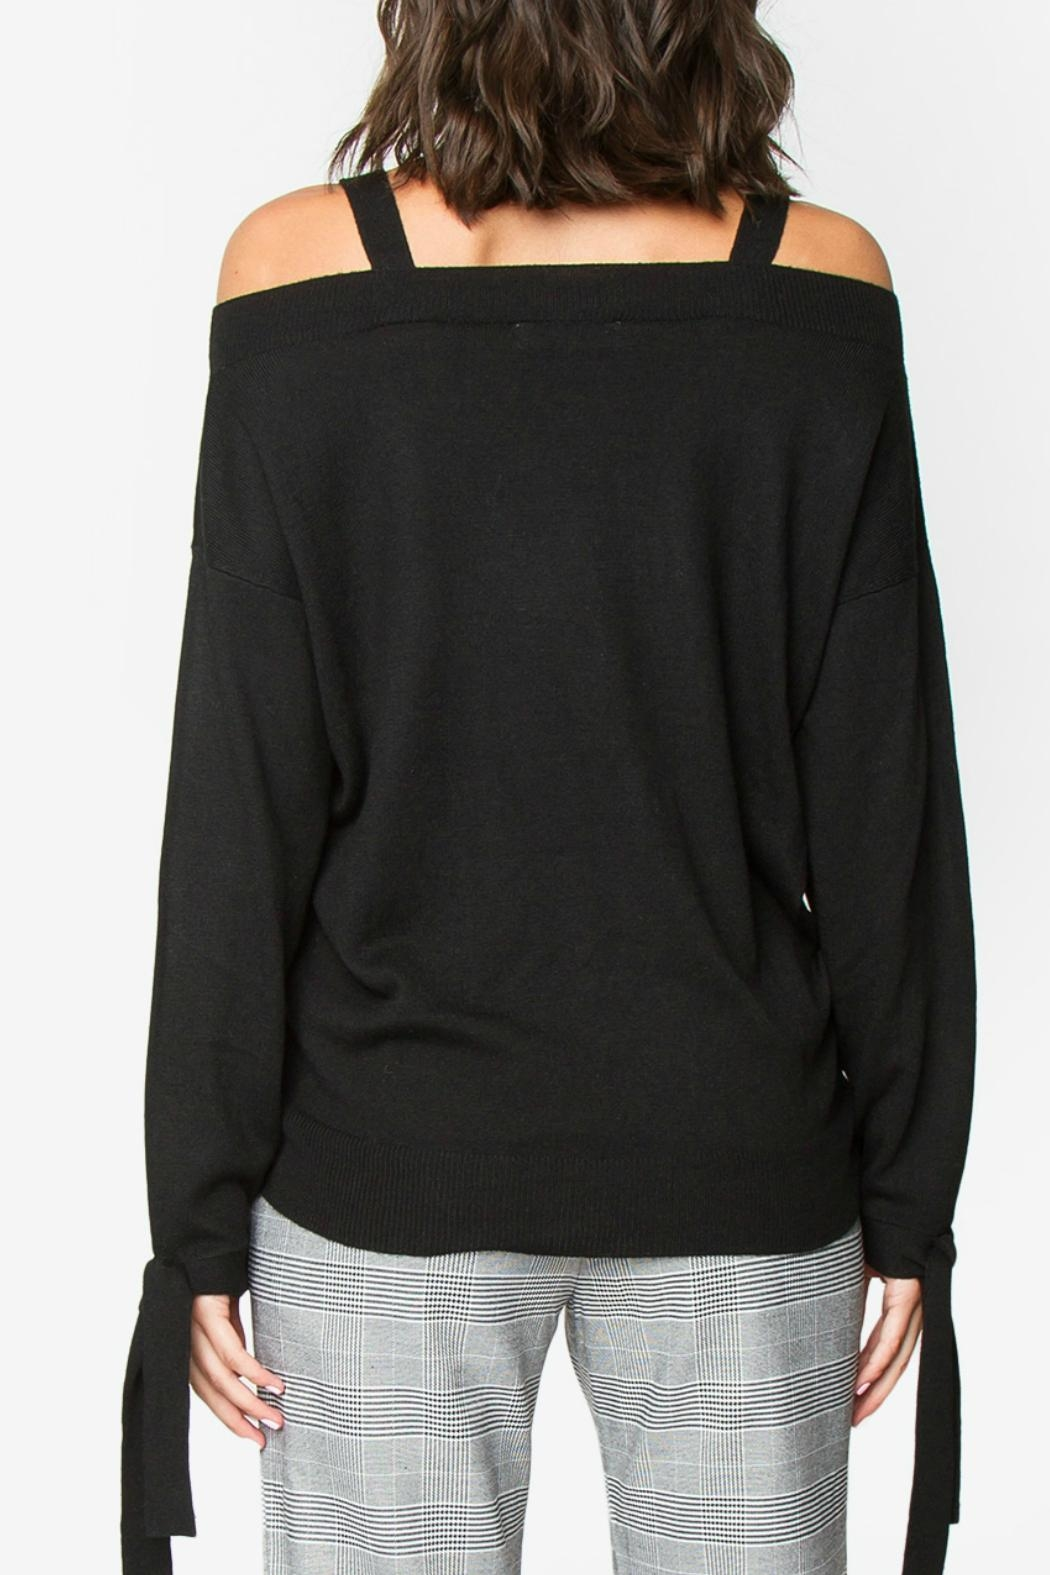 Sugar Lips Ciara Off-The-Shoulder Sweater - Front Full Image